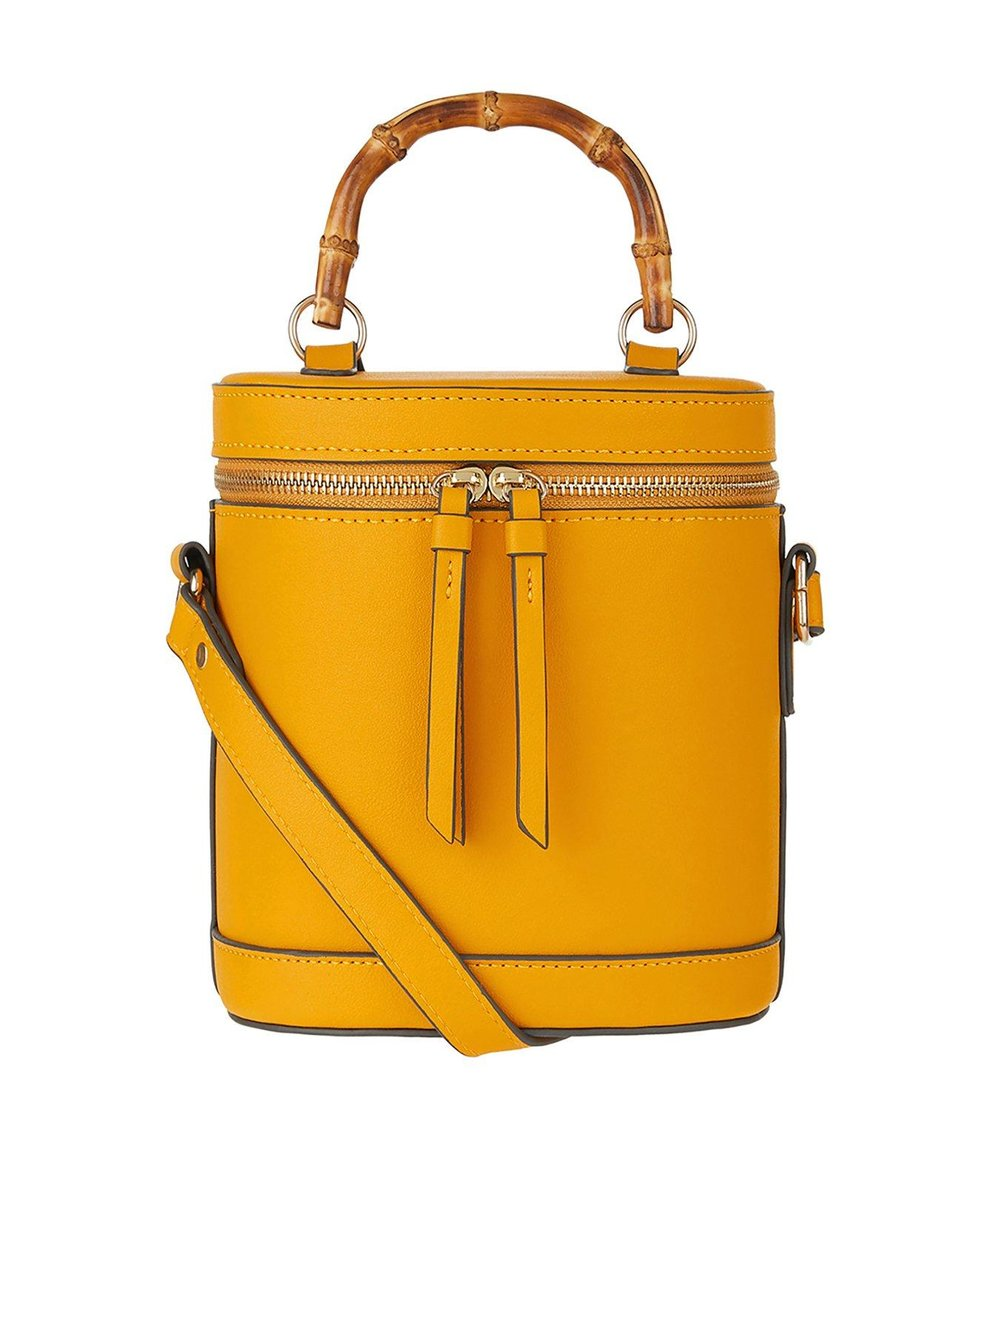 Accessorize Sienna Bucket Bag £35